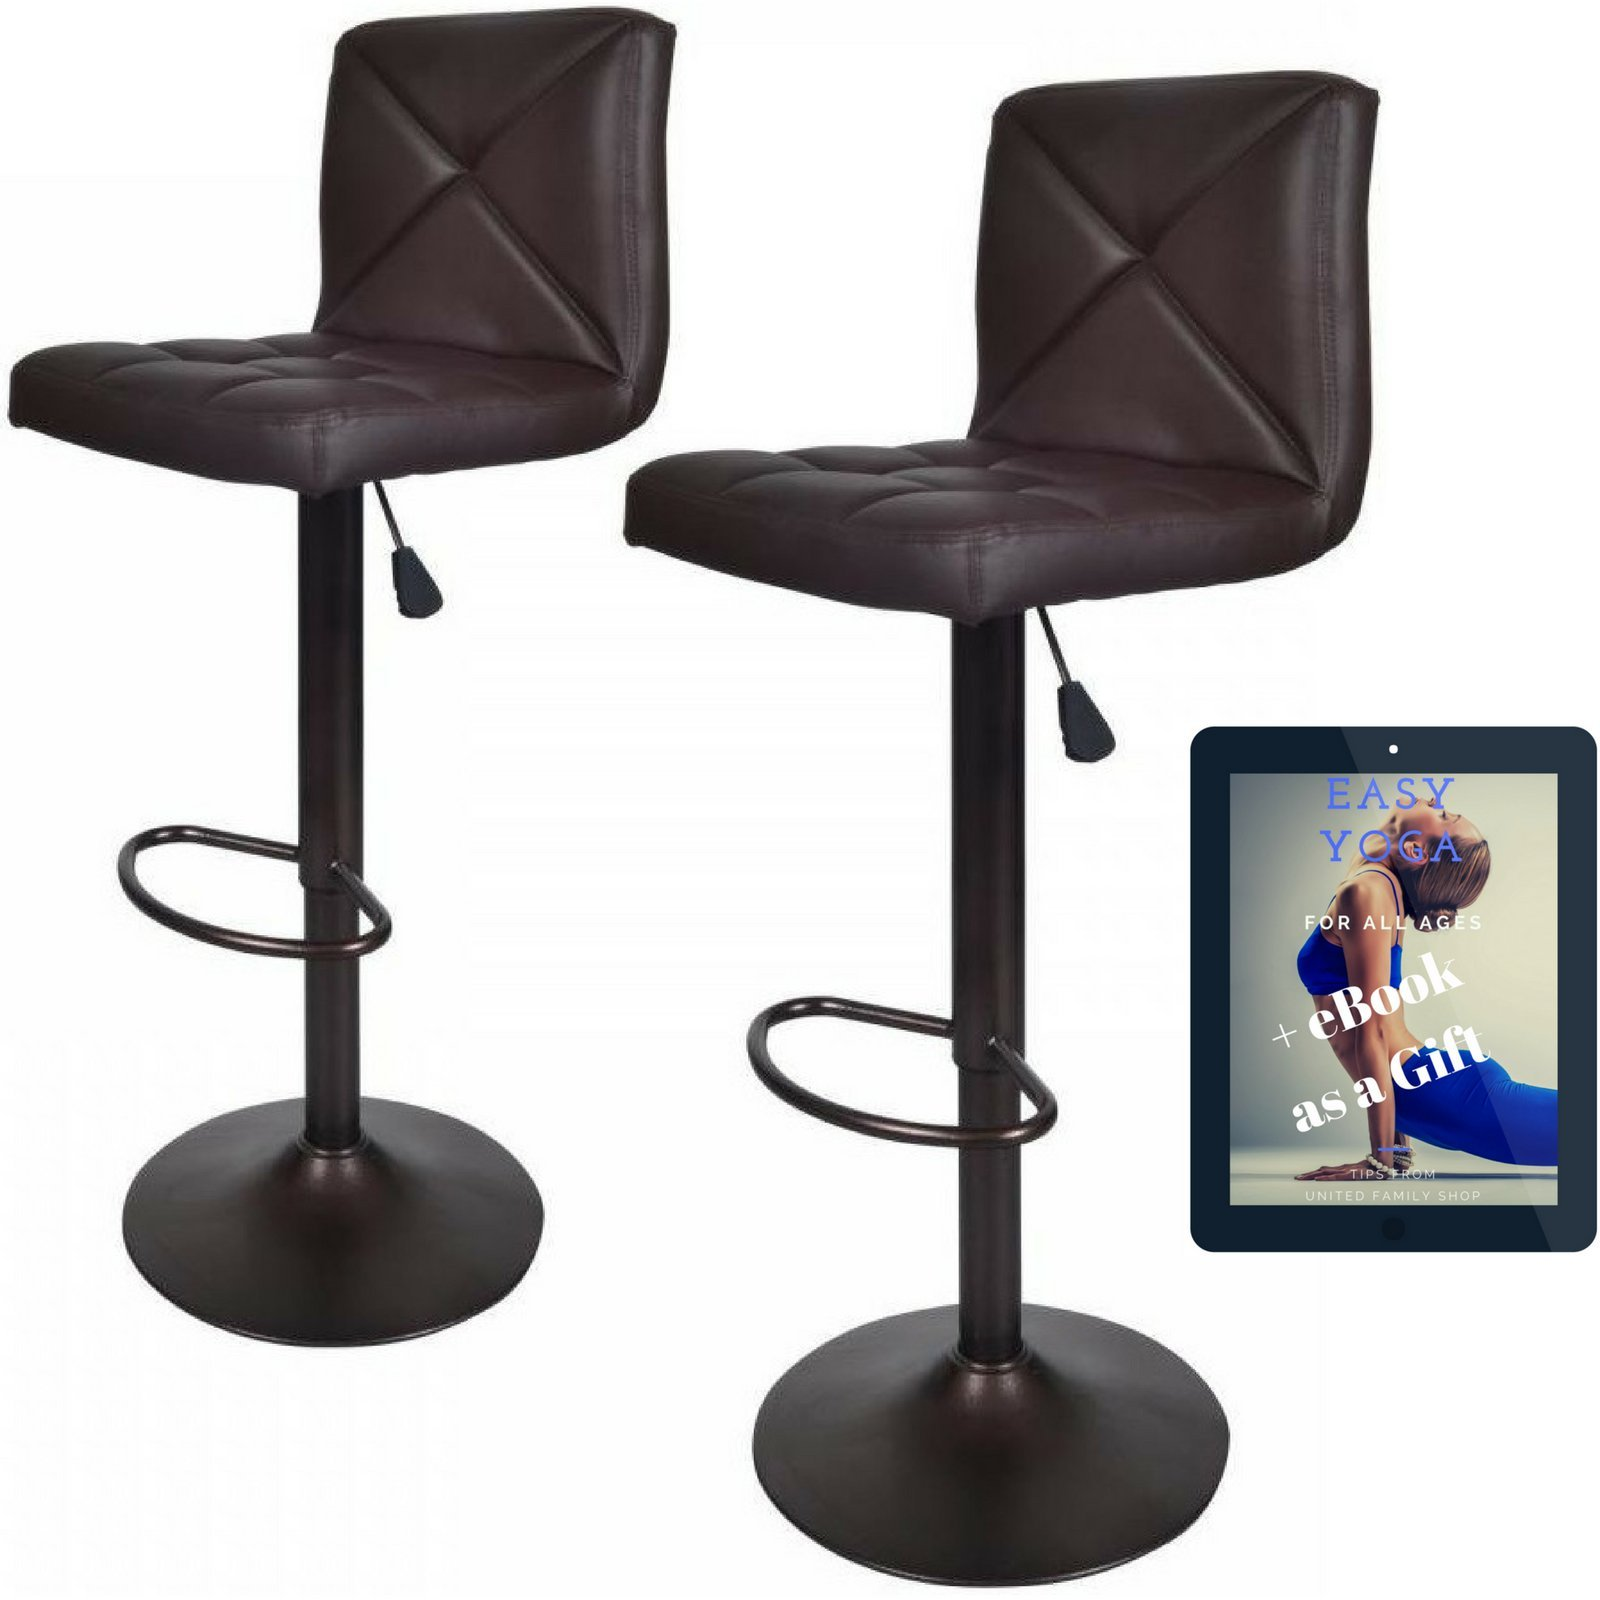 Vintage Bar Stools With Back Set of 2 Brown PU Leather 24 Inch to 32 Inch | Modern 360 Degree Adunited justable Swivel Seat Barstools Hydraulic Chair 2 Pcs | Free Gift Yoga eBook by United Family Shop